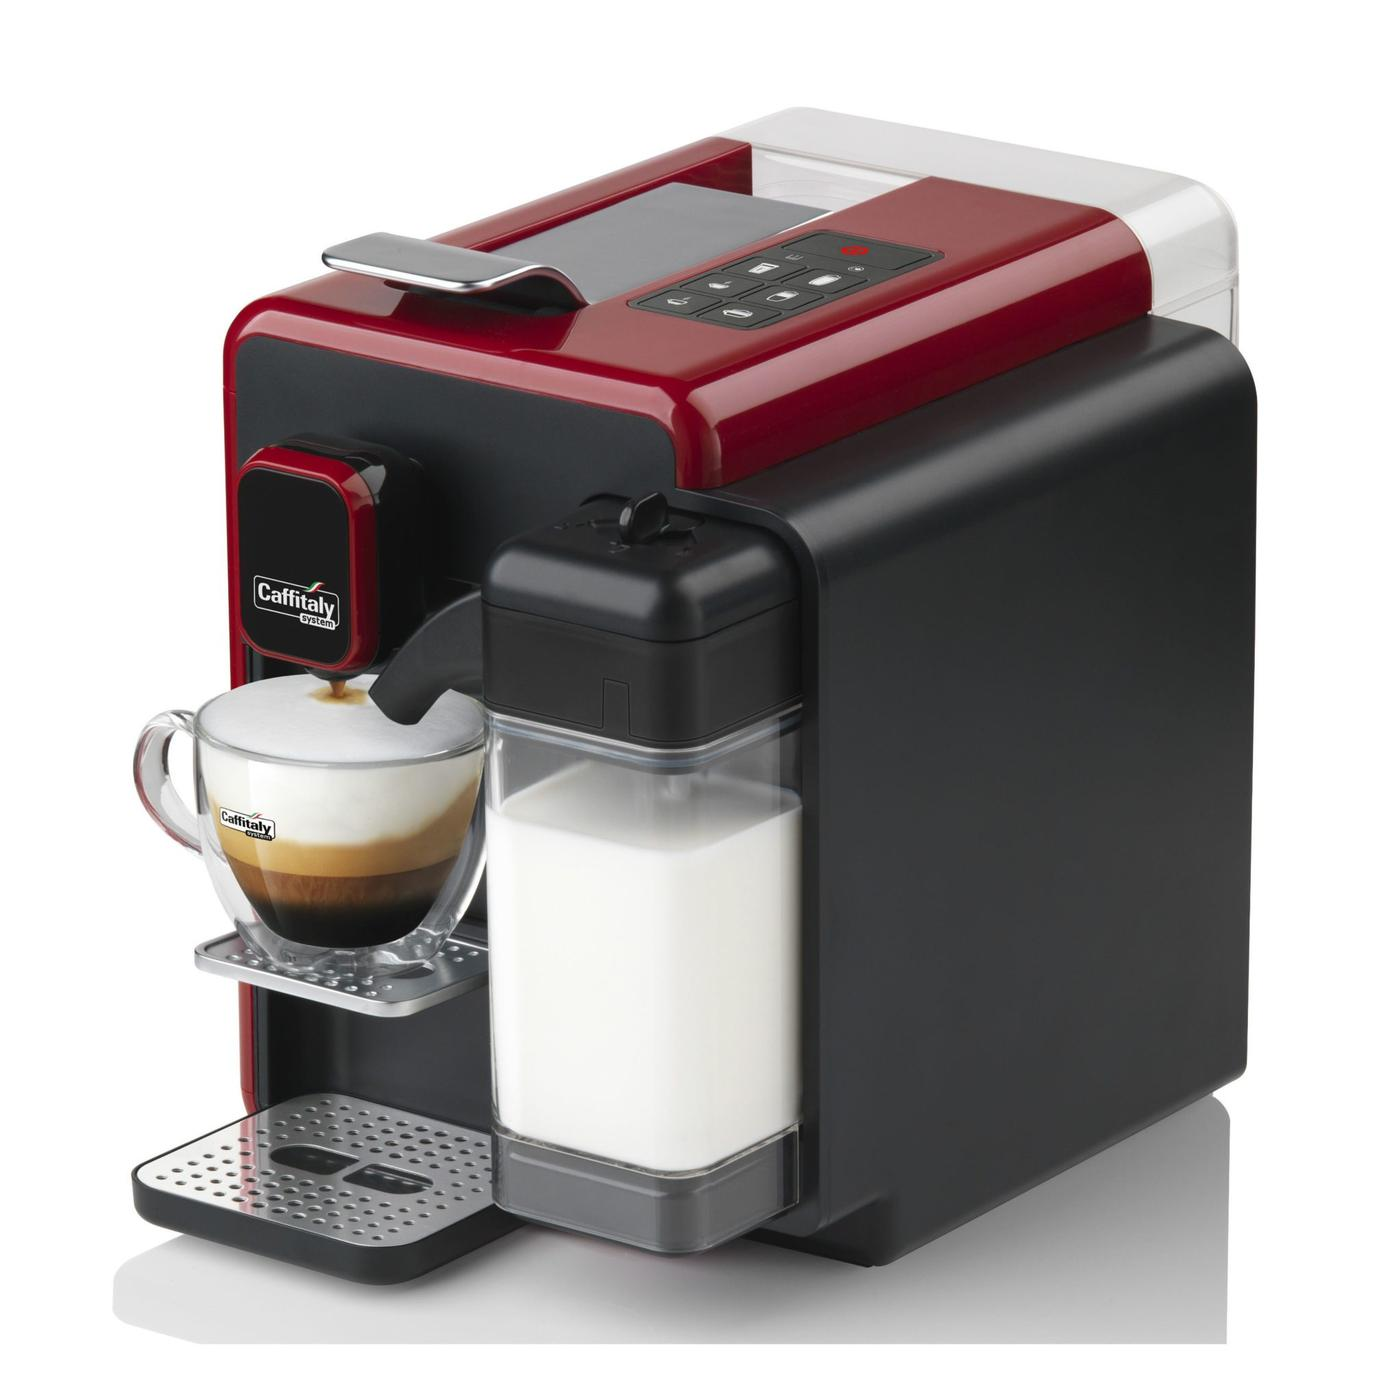 Caffitaly S-22 Coffee Machine -white only- FREE DELIVERY WITHIN THE UK ONLY